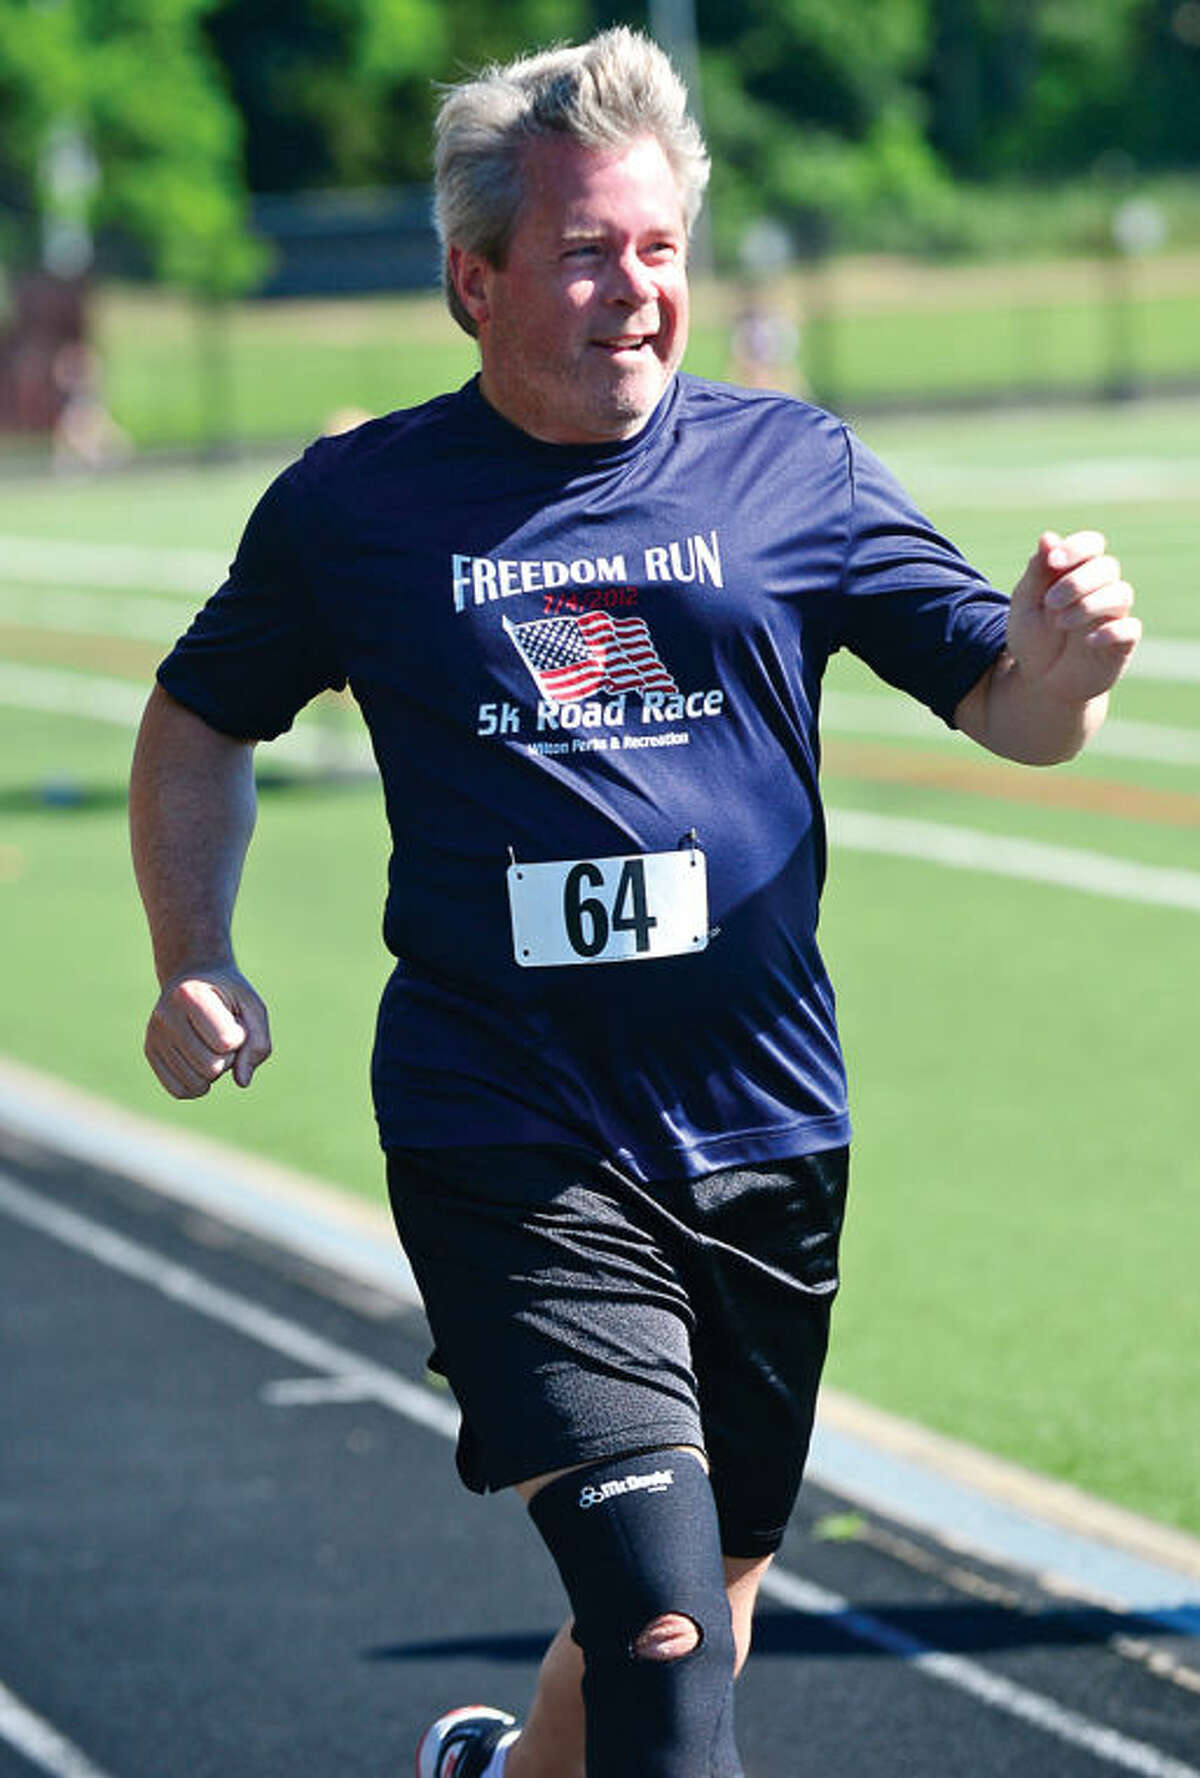 Hour photo / Erik Trautmann Thom Healy has been running in the annual Freedom Run (5K) Road Race for over 10 years. The race is part of Wilton's Independence Day festivities Saturday morning.